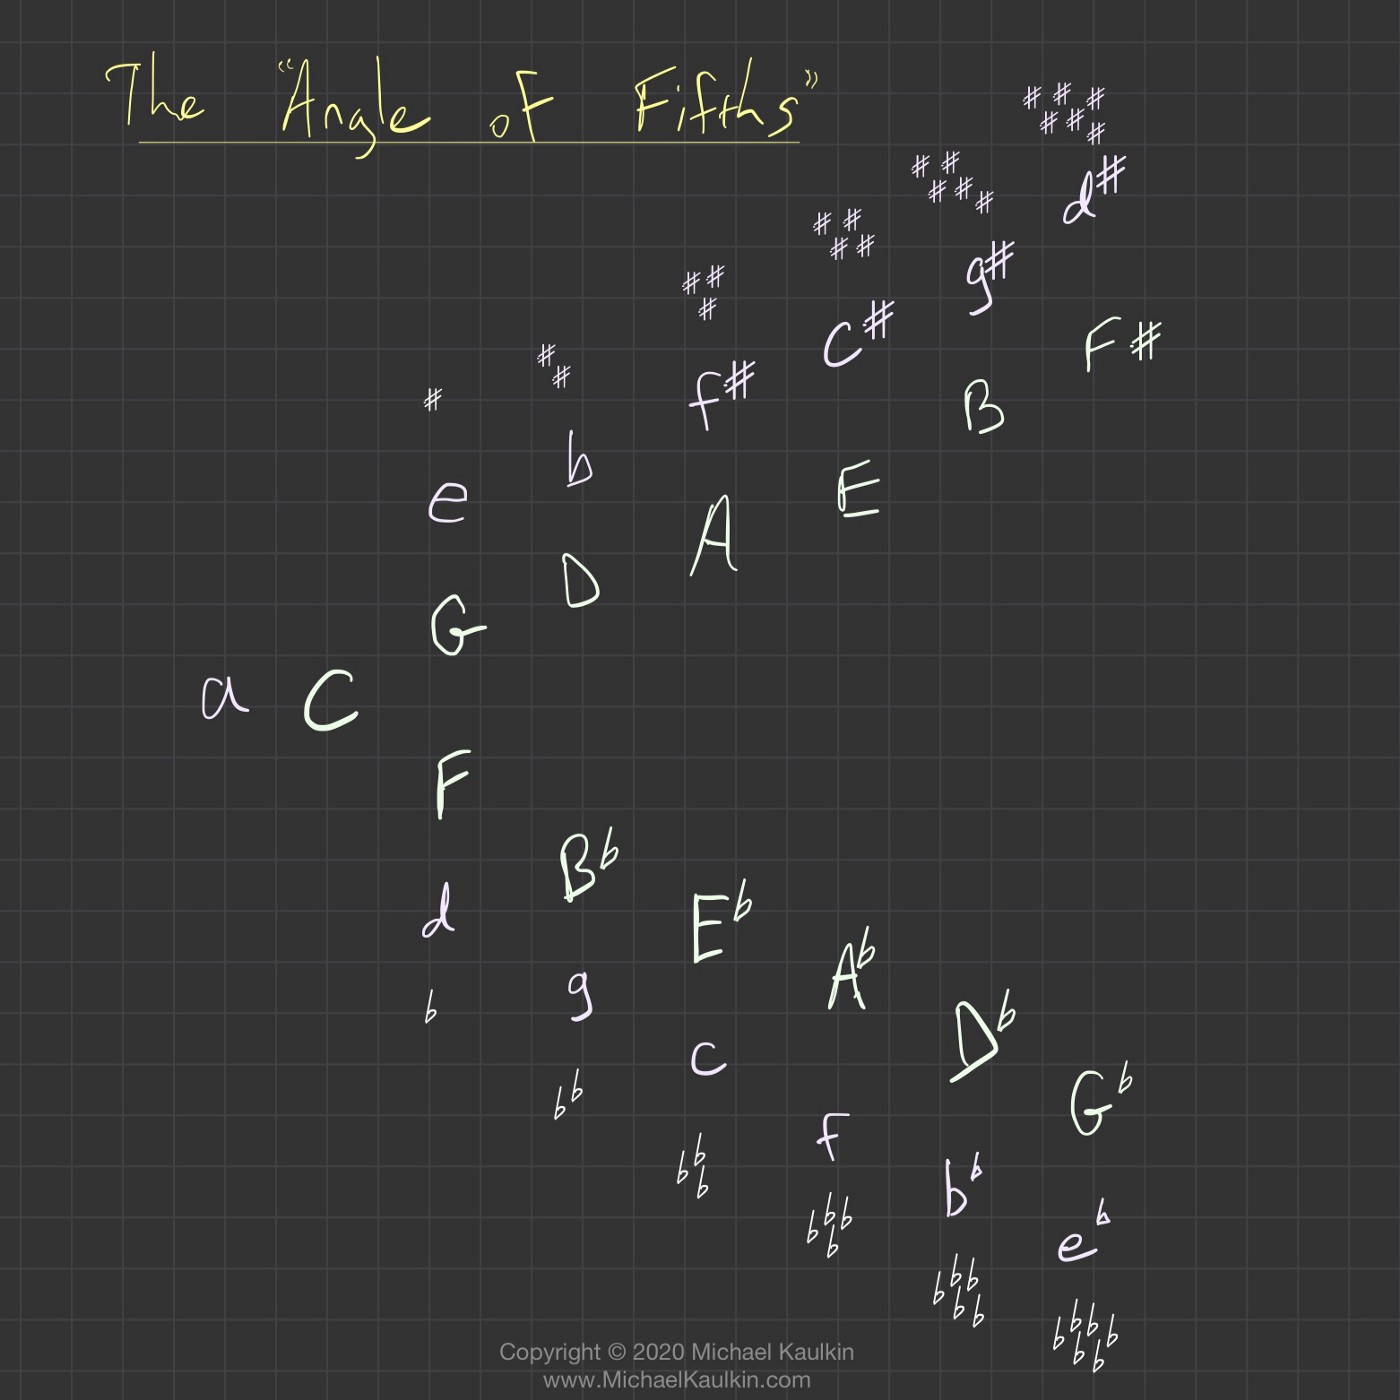 The Angle of Fifths: Alternative to Everyone's Favorite Circle